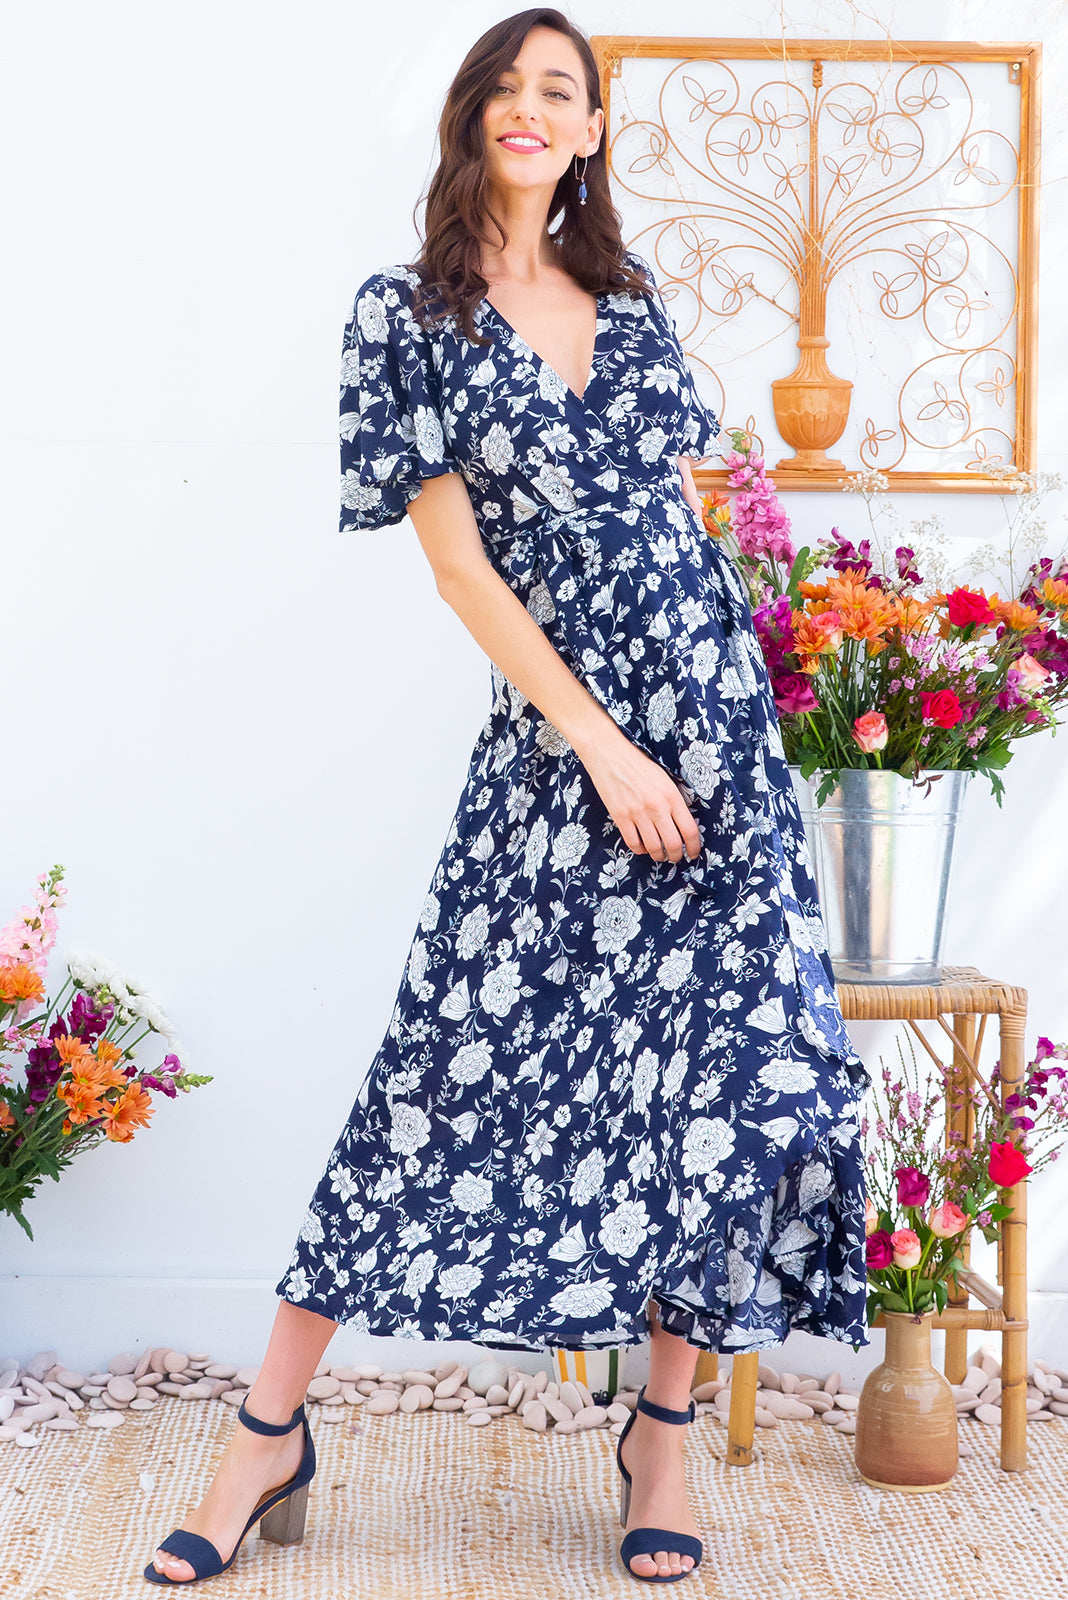 Petal Fortnum Navy Maxi Wrap Dress features a strong navy base with a white floral bohemian print on a soft woven rayon it features petal sleeves, a wrap around waist and a waterfall hemline